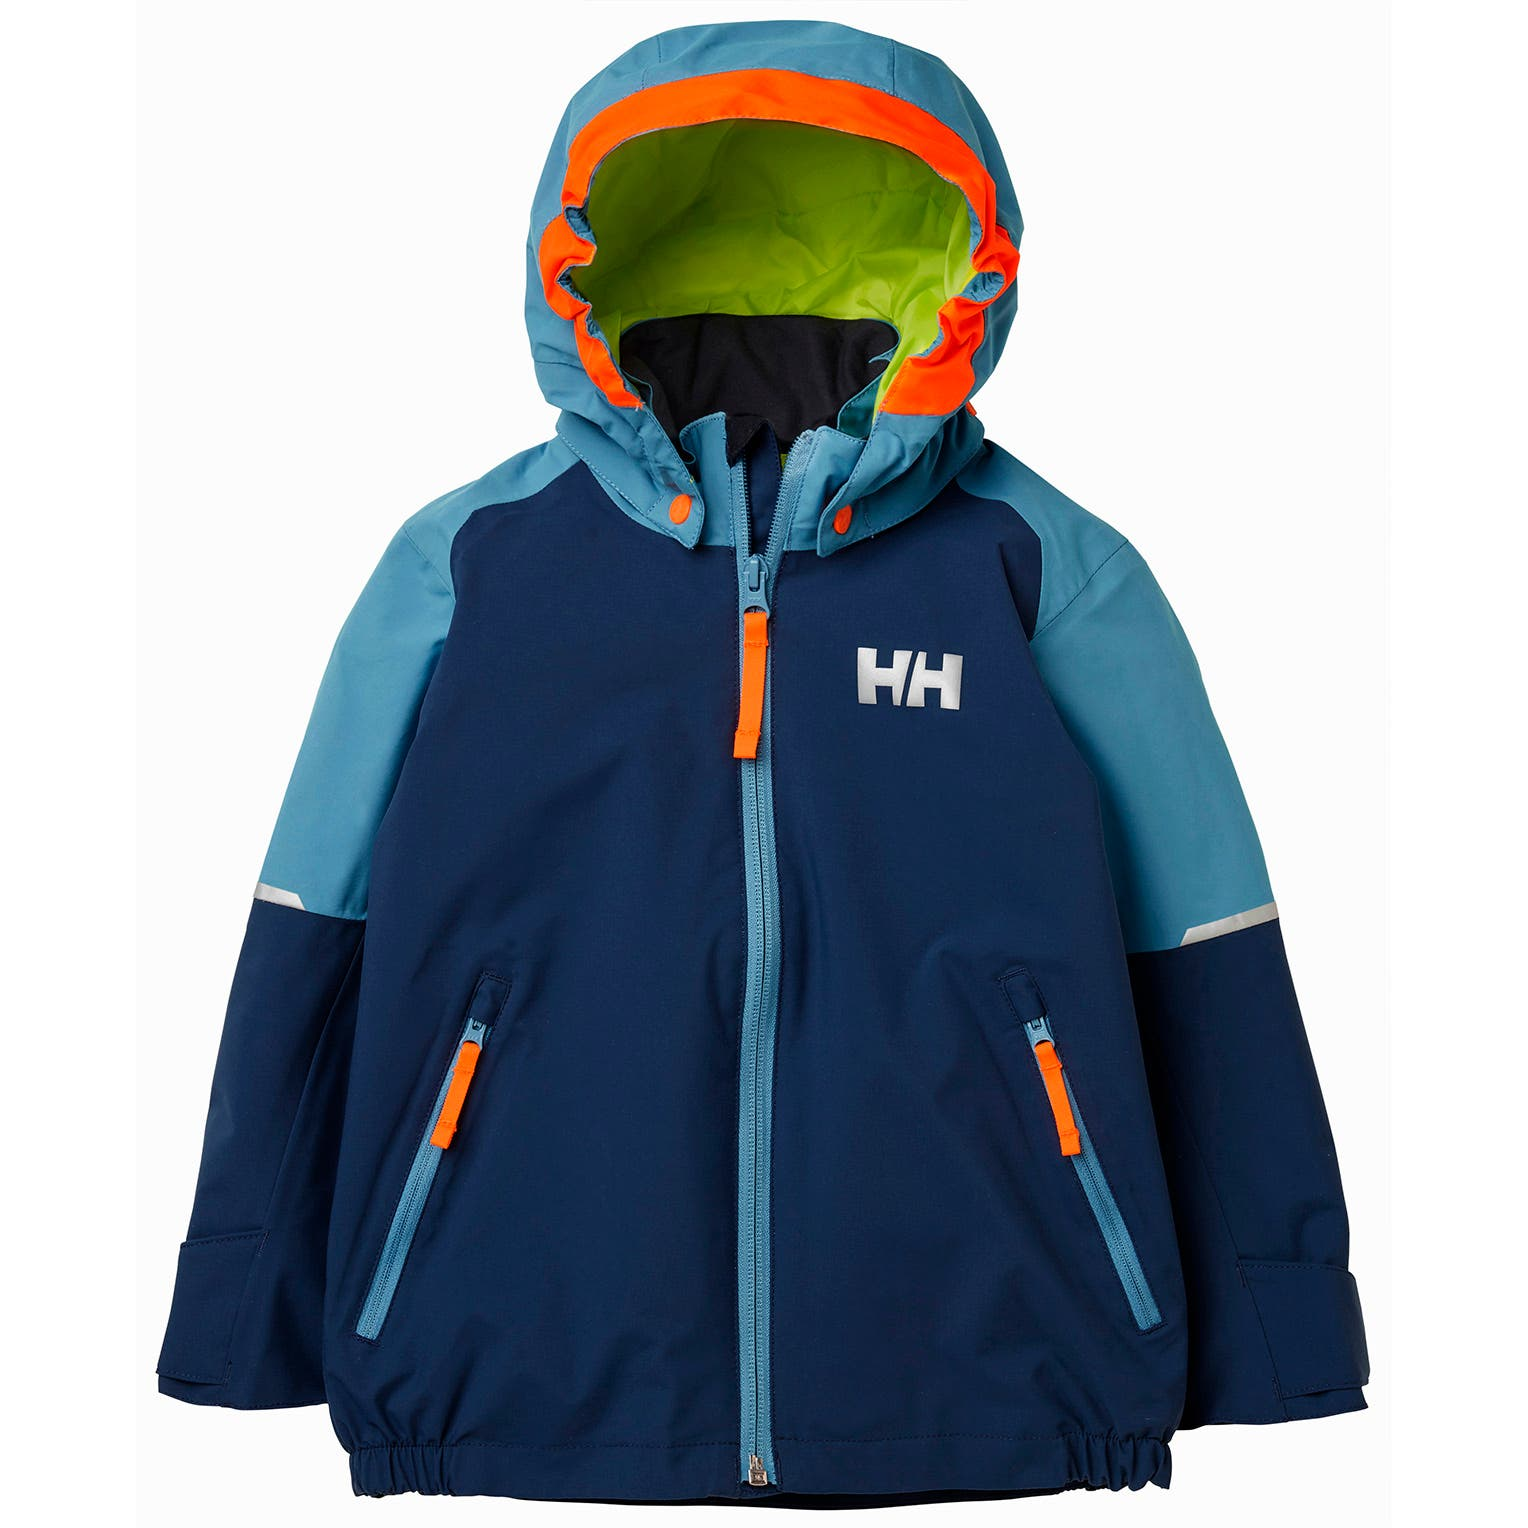 Helly-Hansen Kids /& Baby Shelter Waterproof Breathable All-weather Jacket